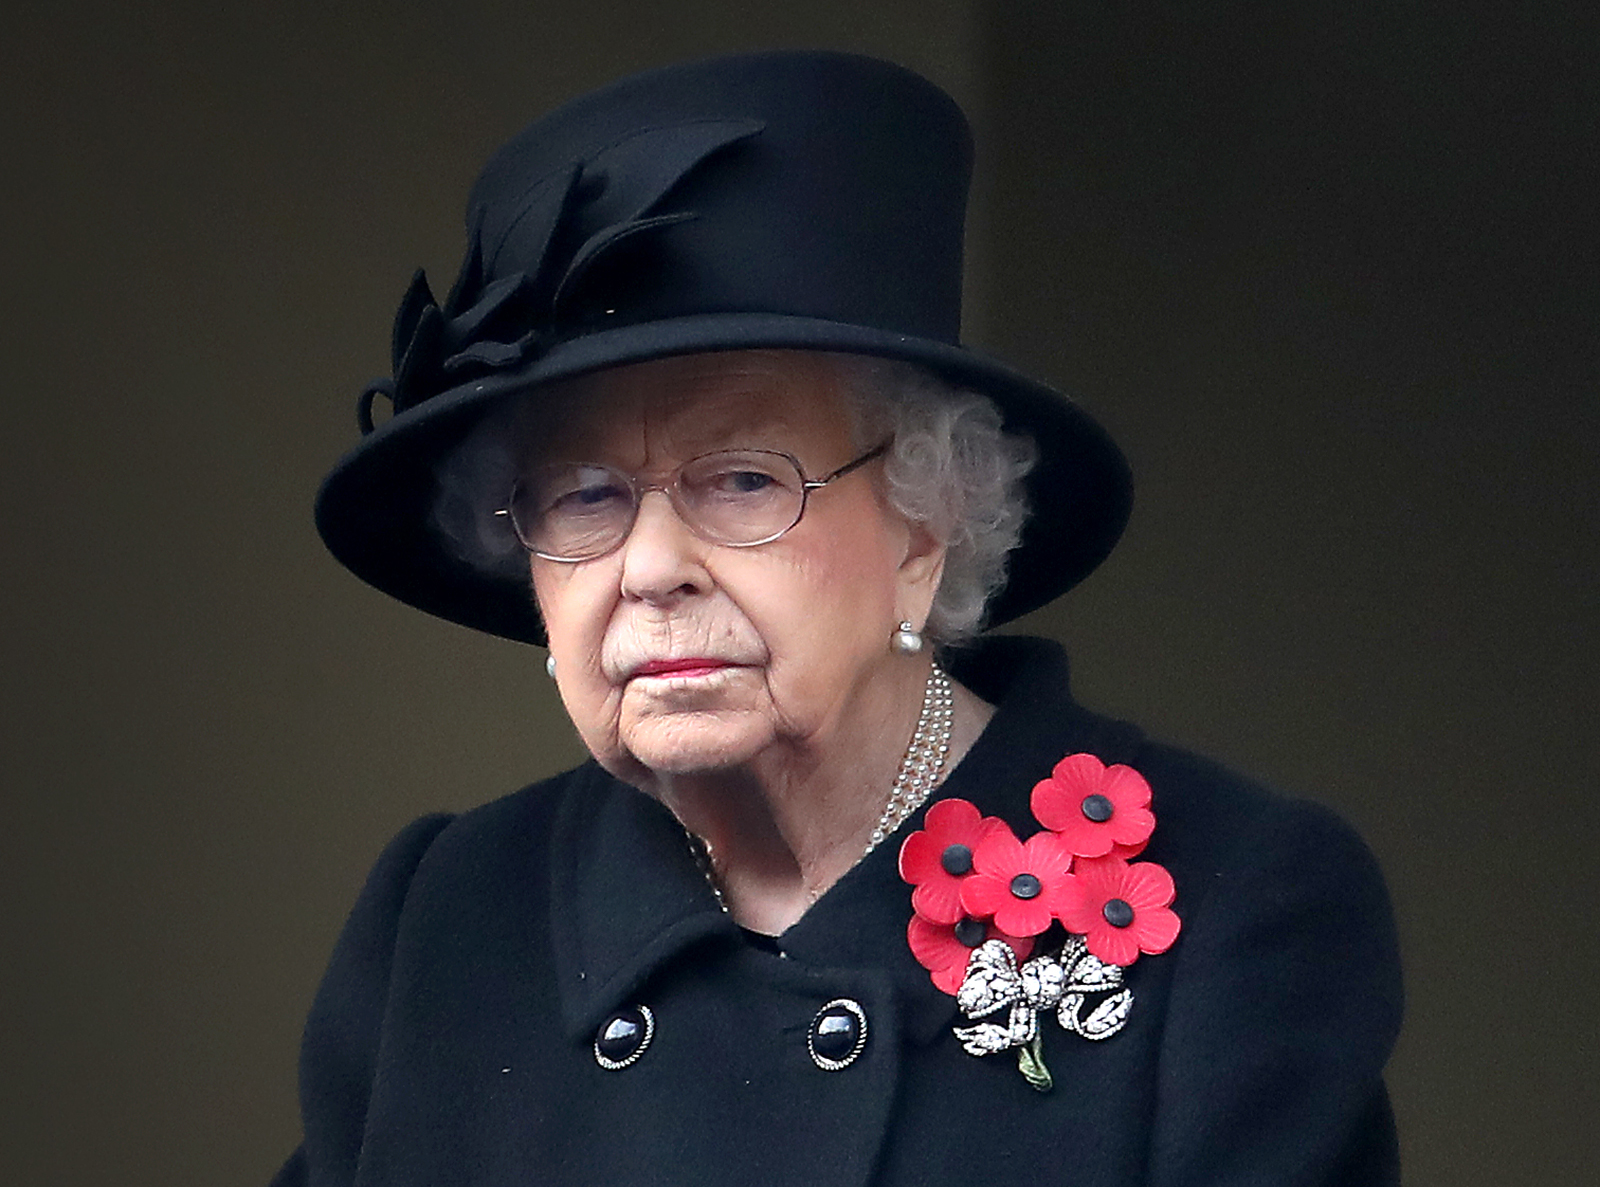 Queen Elizabeth II watched during the Cenotaph Memorial Service at the Cenotaph on November 8, 2020 in London, England.